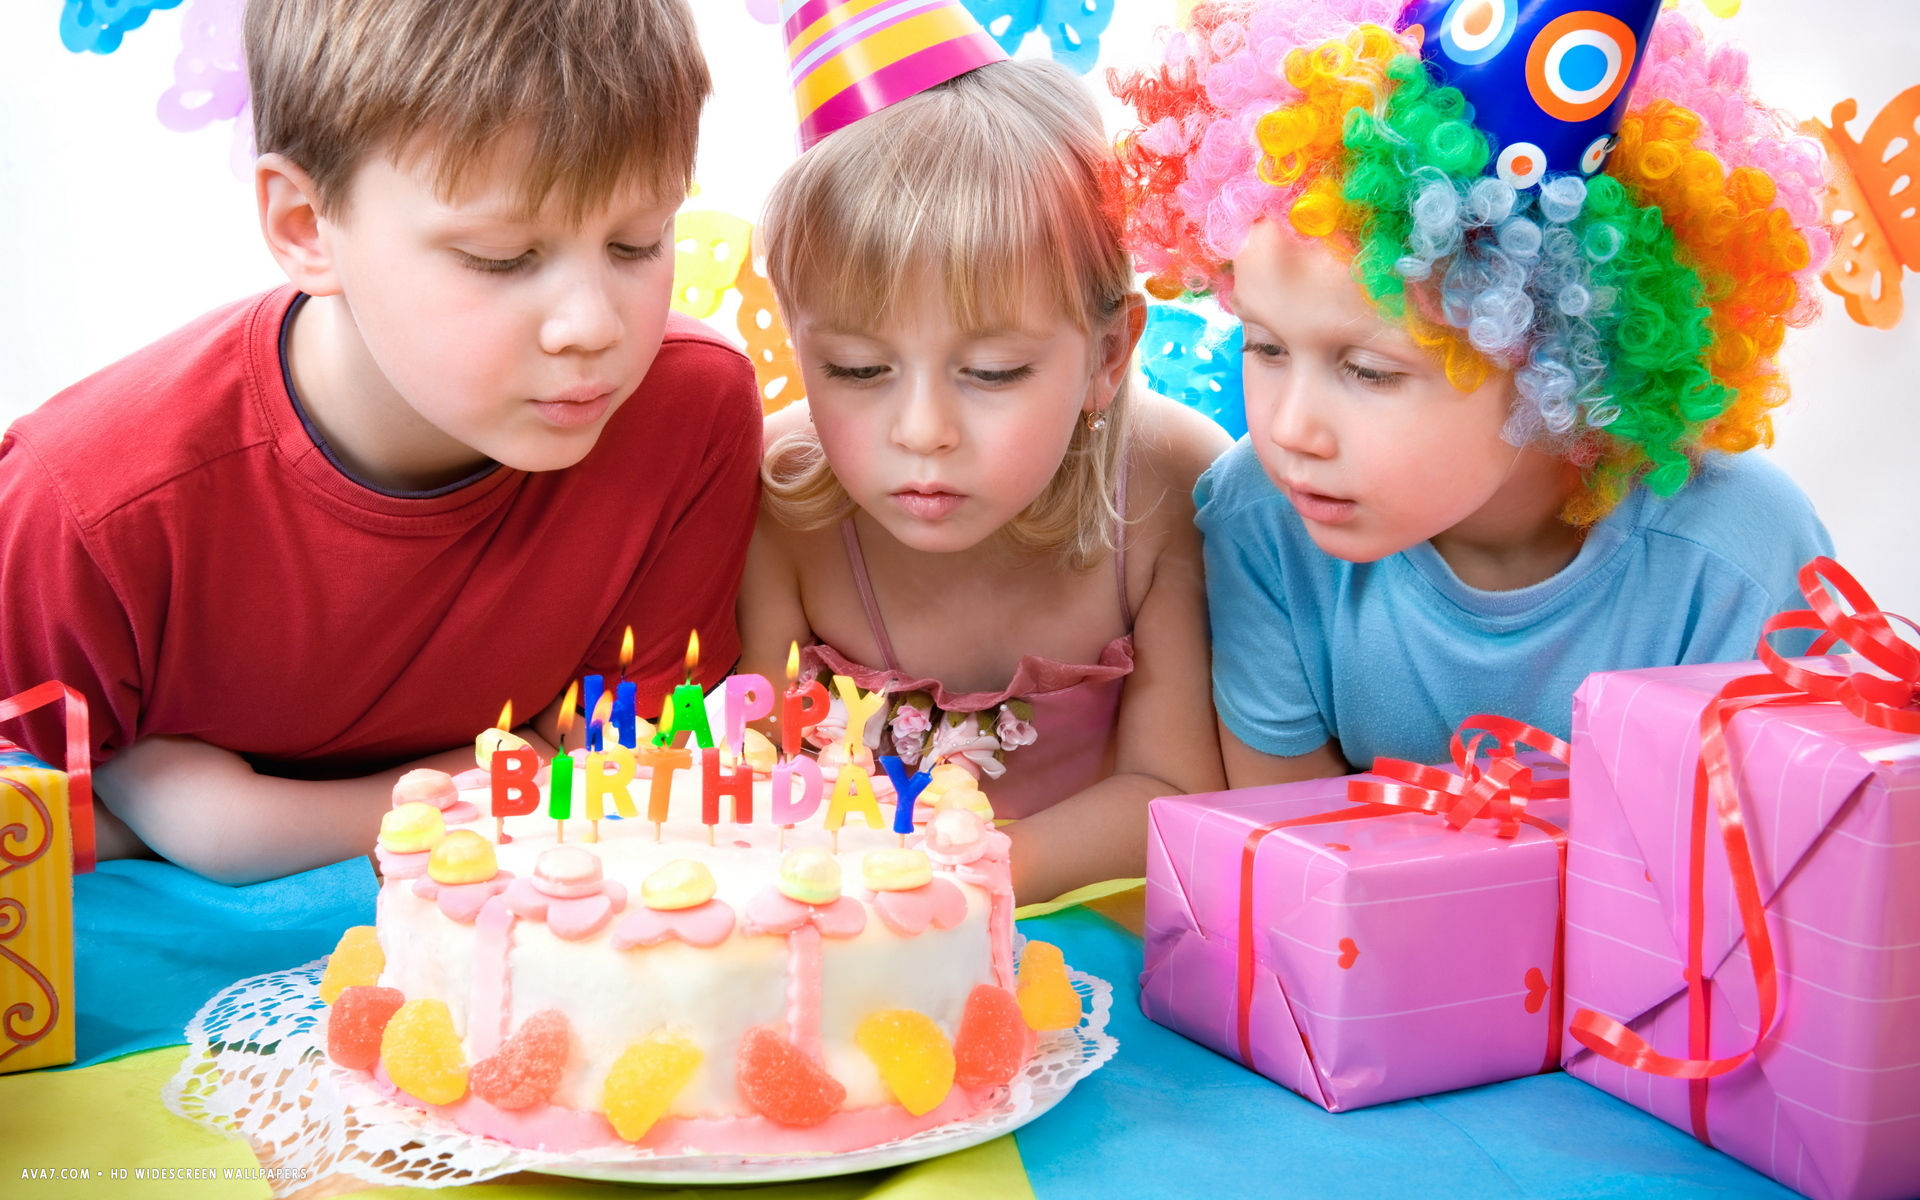 Happy Birthday Kids Party Fruit Cake Candles Presents Gifts Hd Widescreen Wallpaper